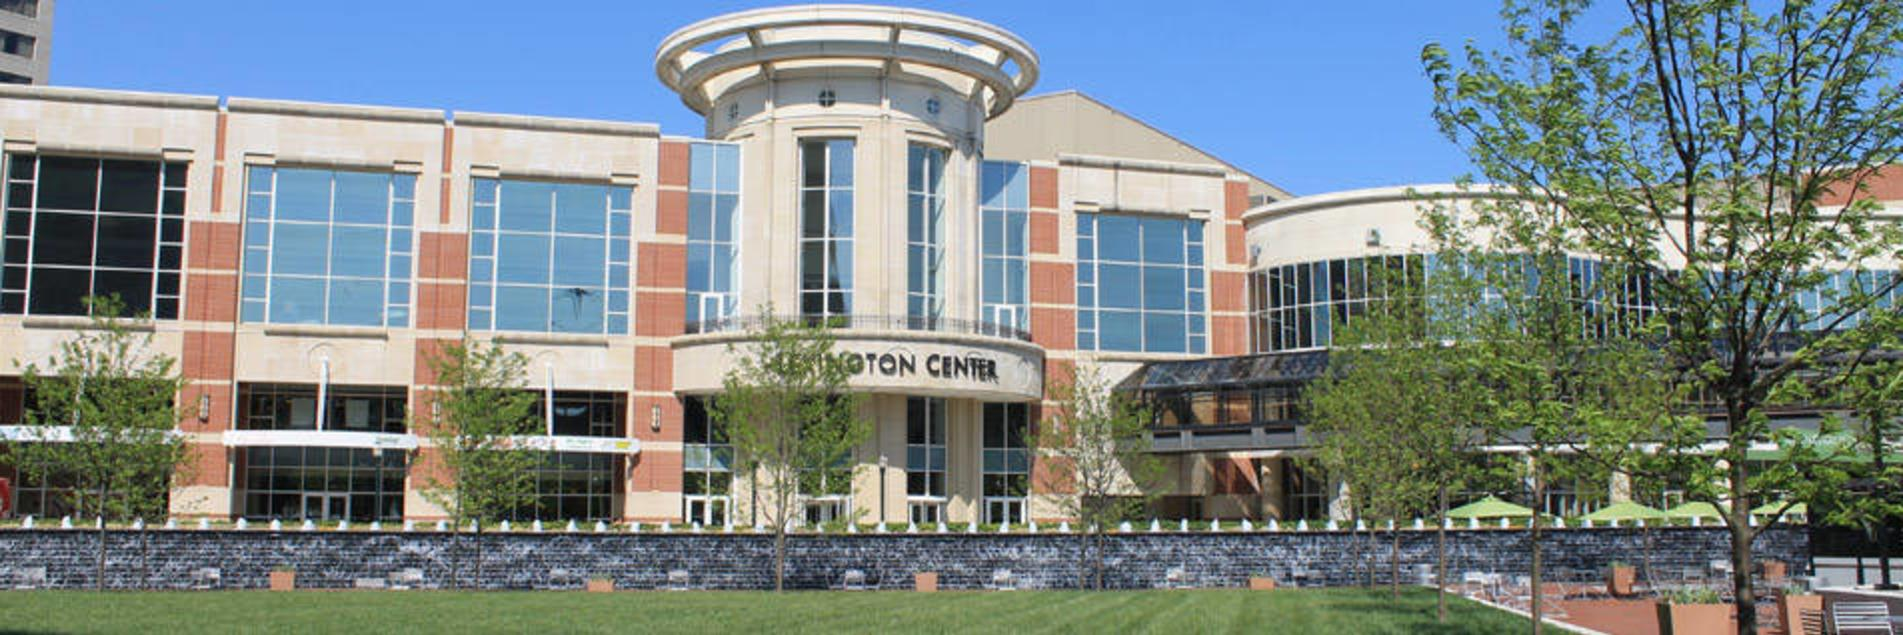 Lexington Convention Center